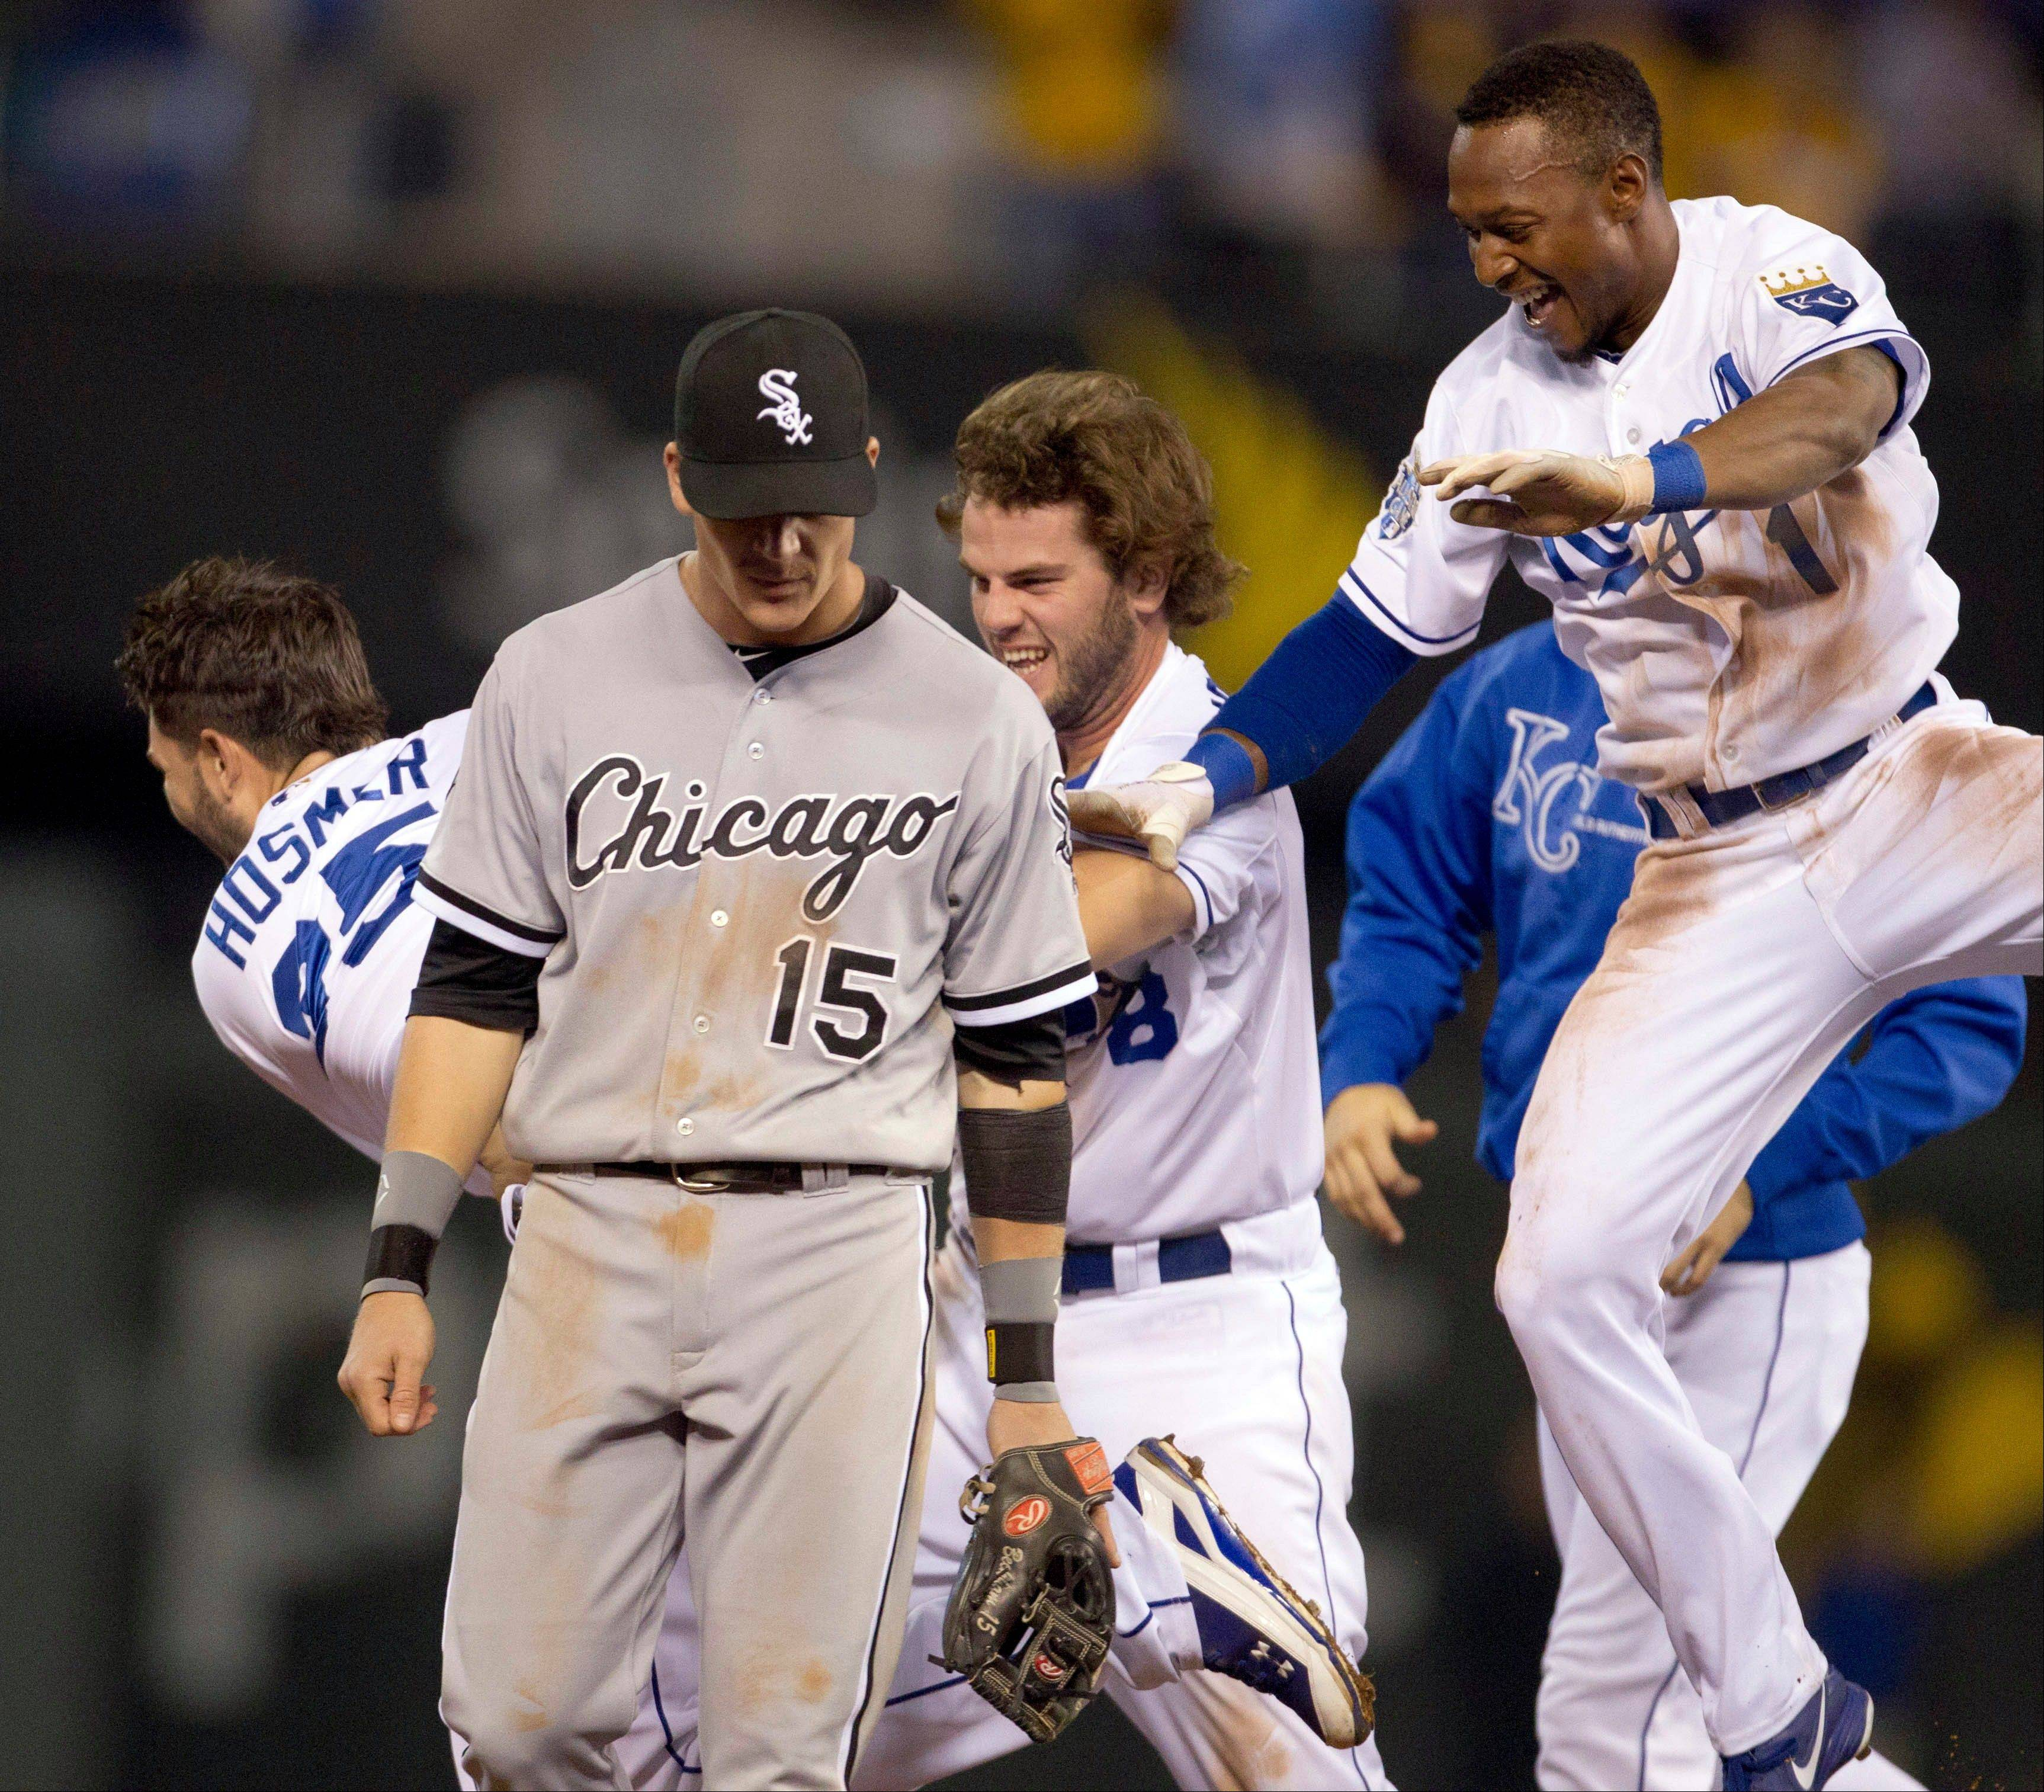 Losing yet another series to the Kansas City Royals has put the White Sox in a difficult position as they try to hold off Detroit and win the AL Central.